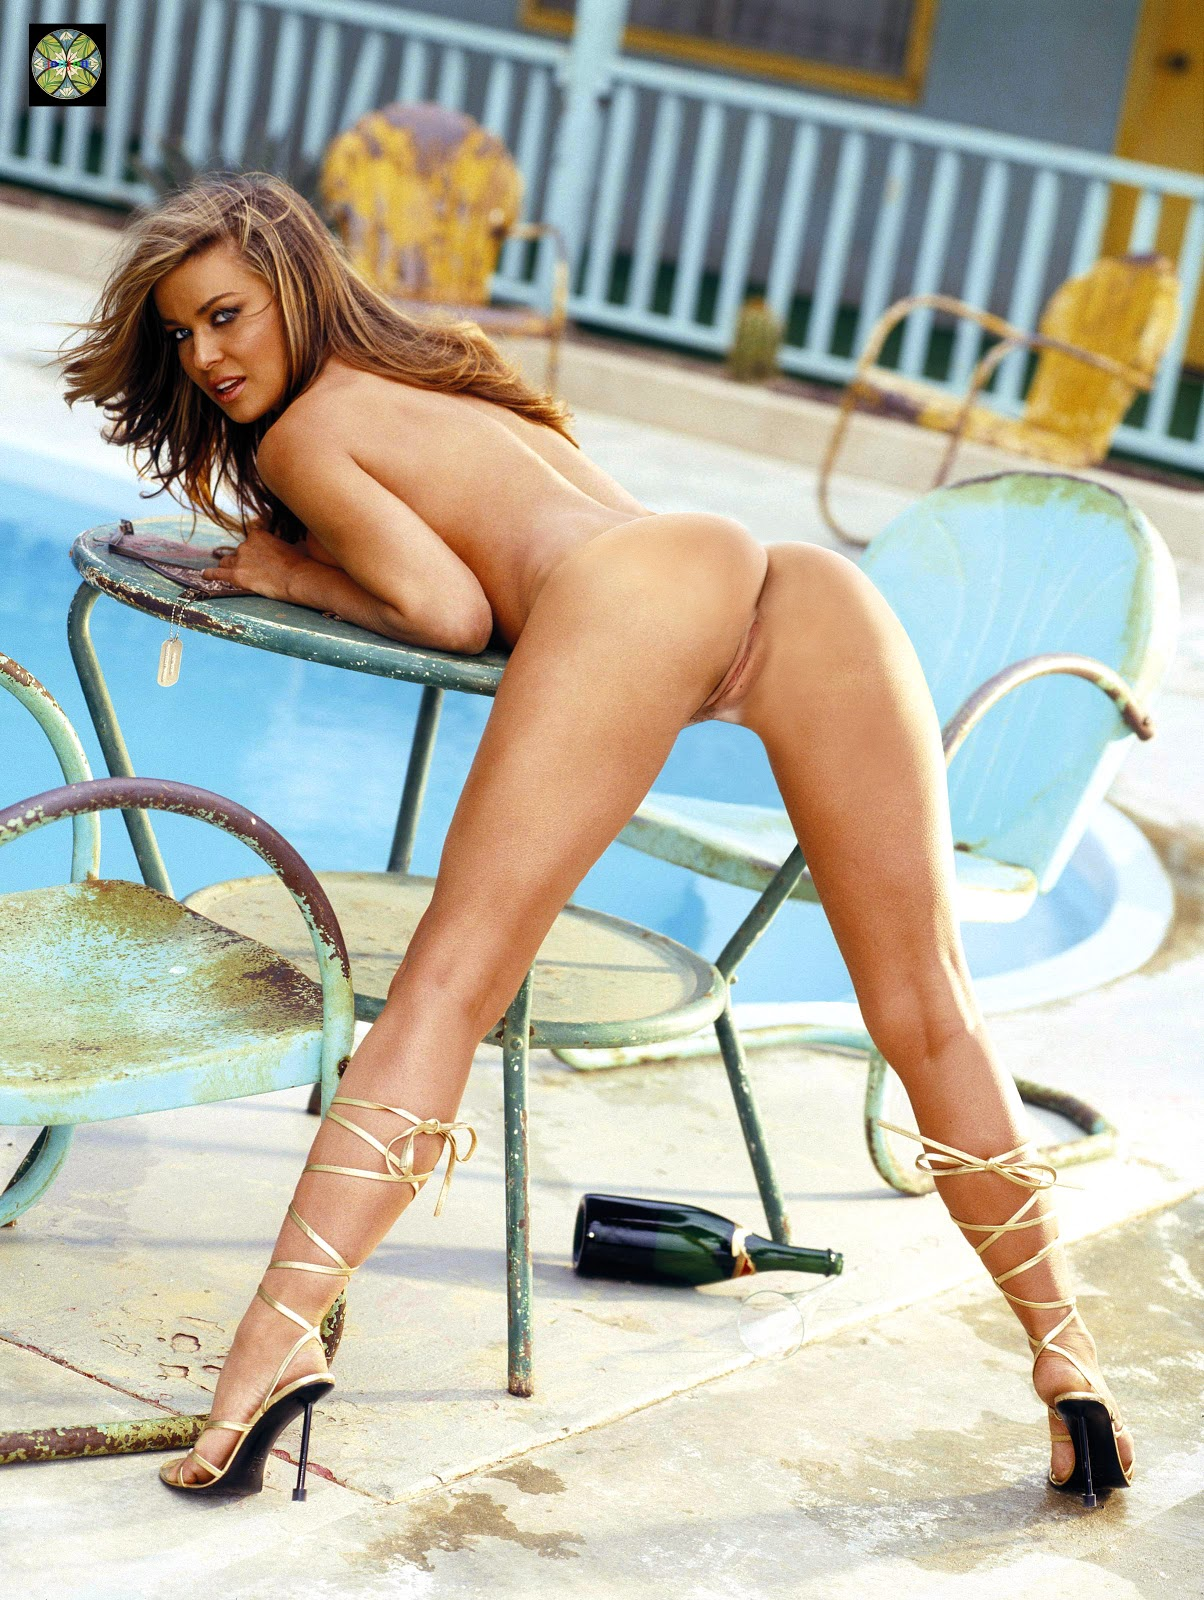 bent over nude women of playboy